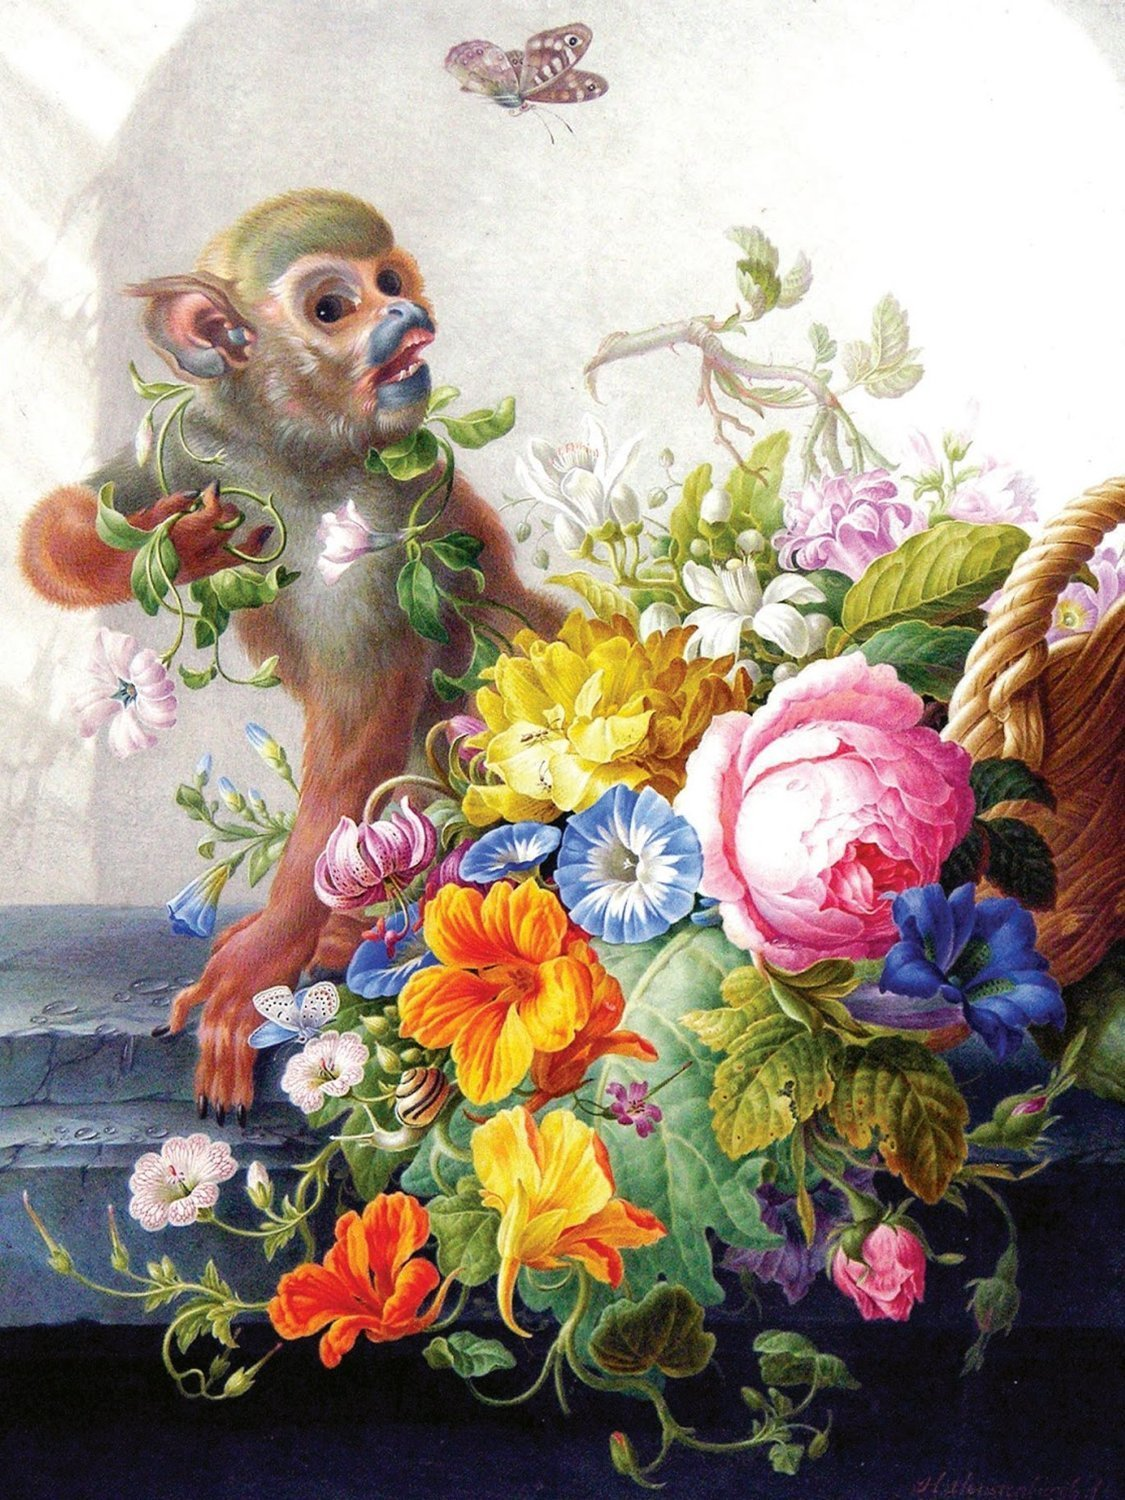 Monkey and a basket of flowers tile mural kitchen wall for Mural of flowers